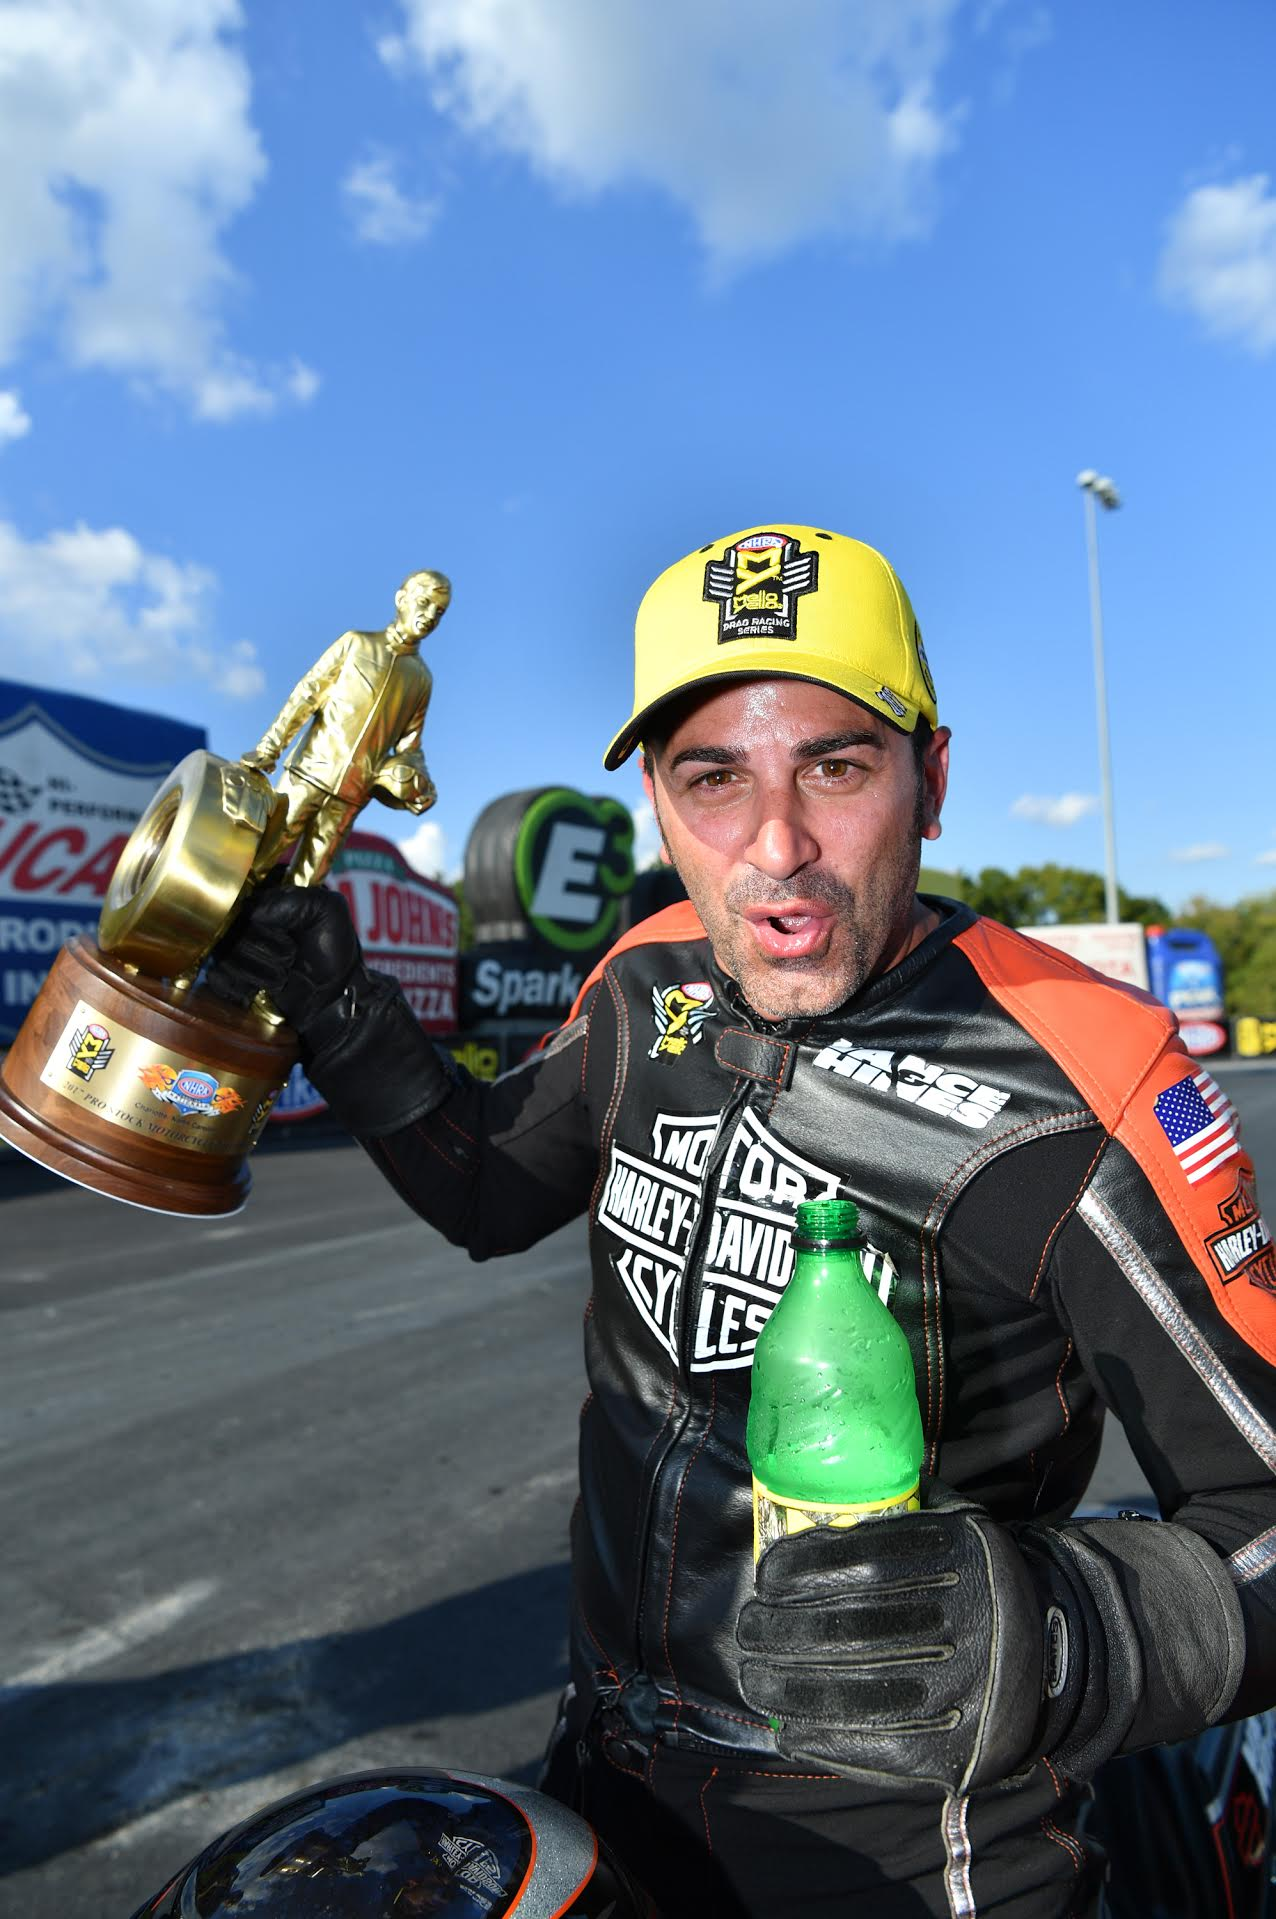 KRAWIEC WINS ALL-HARLEY STREET ROD NHRA FINAL AT CHARLOTTE